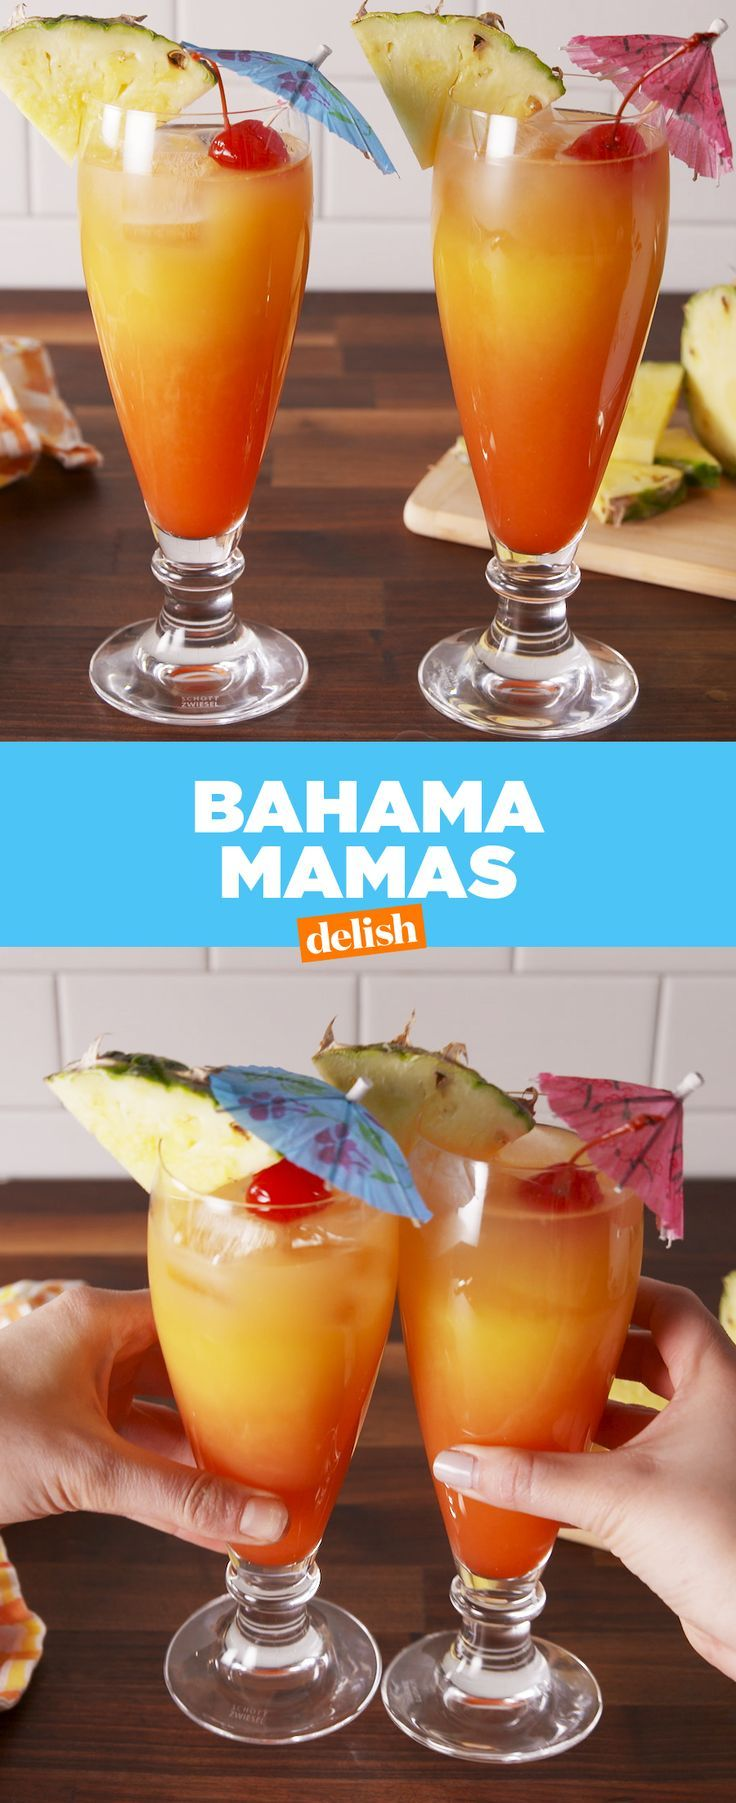 You're always on vacation when you have a Bahama Mama in hand. Get the recipe at Delish.com. #recipe #easyrecipe #rum #cocktail #bahamas #coconut #drinking #alcohol #orange #juice #pineapple #vacation